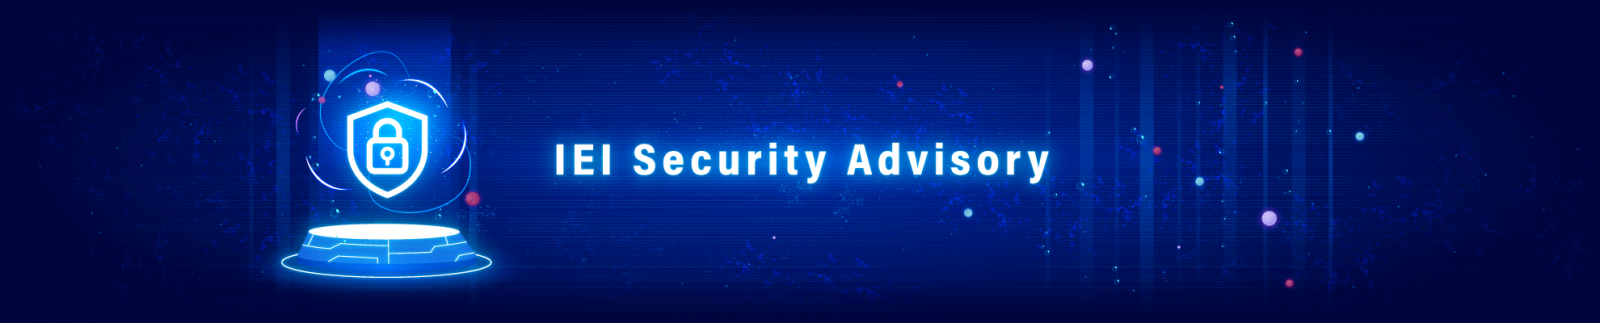 IEI Security Advisory